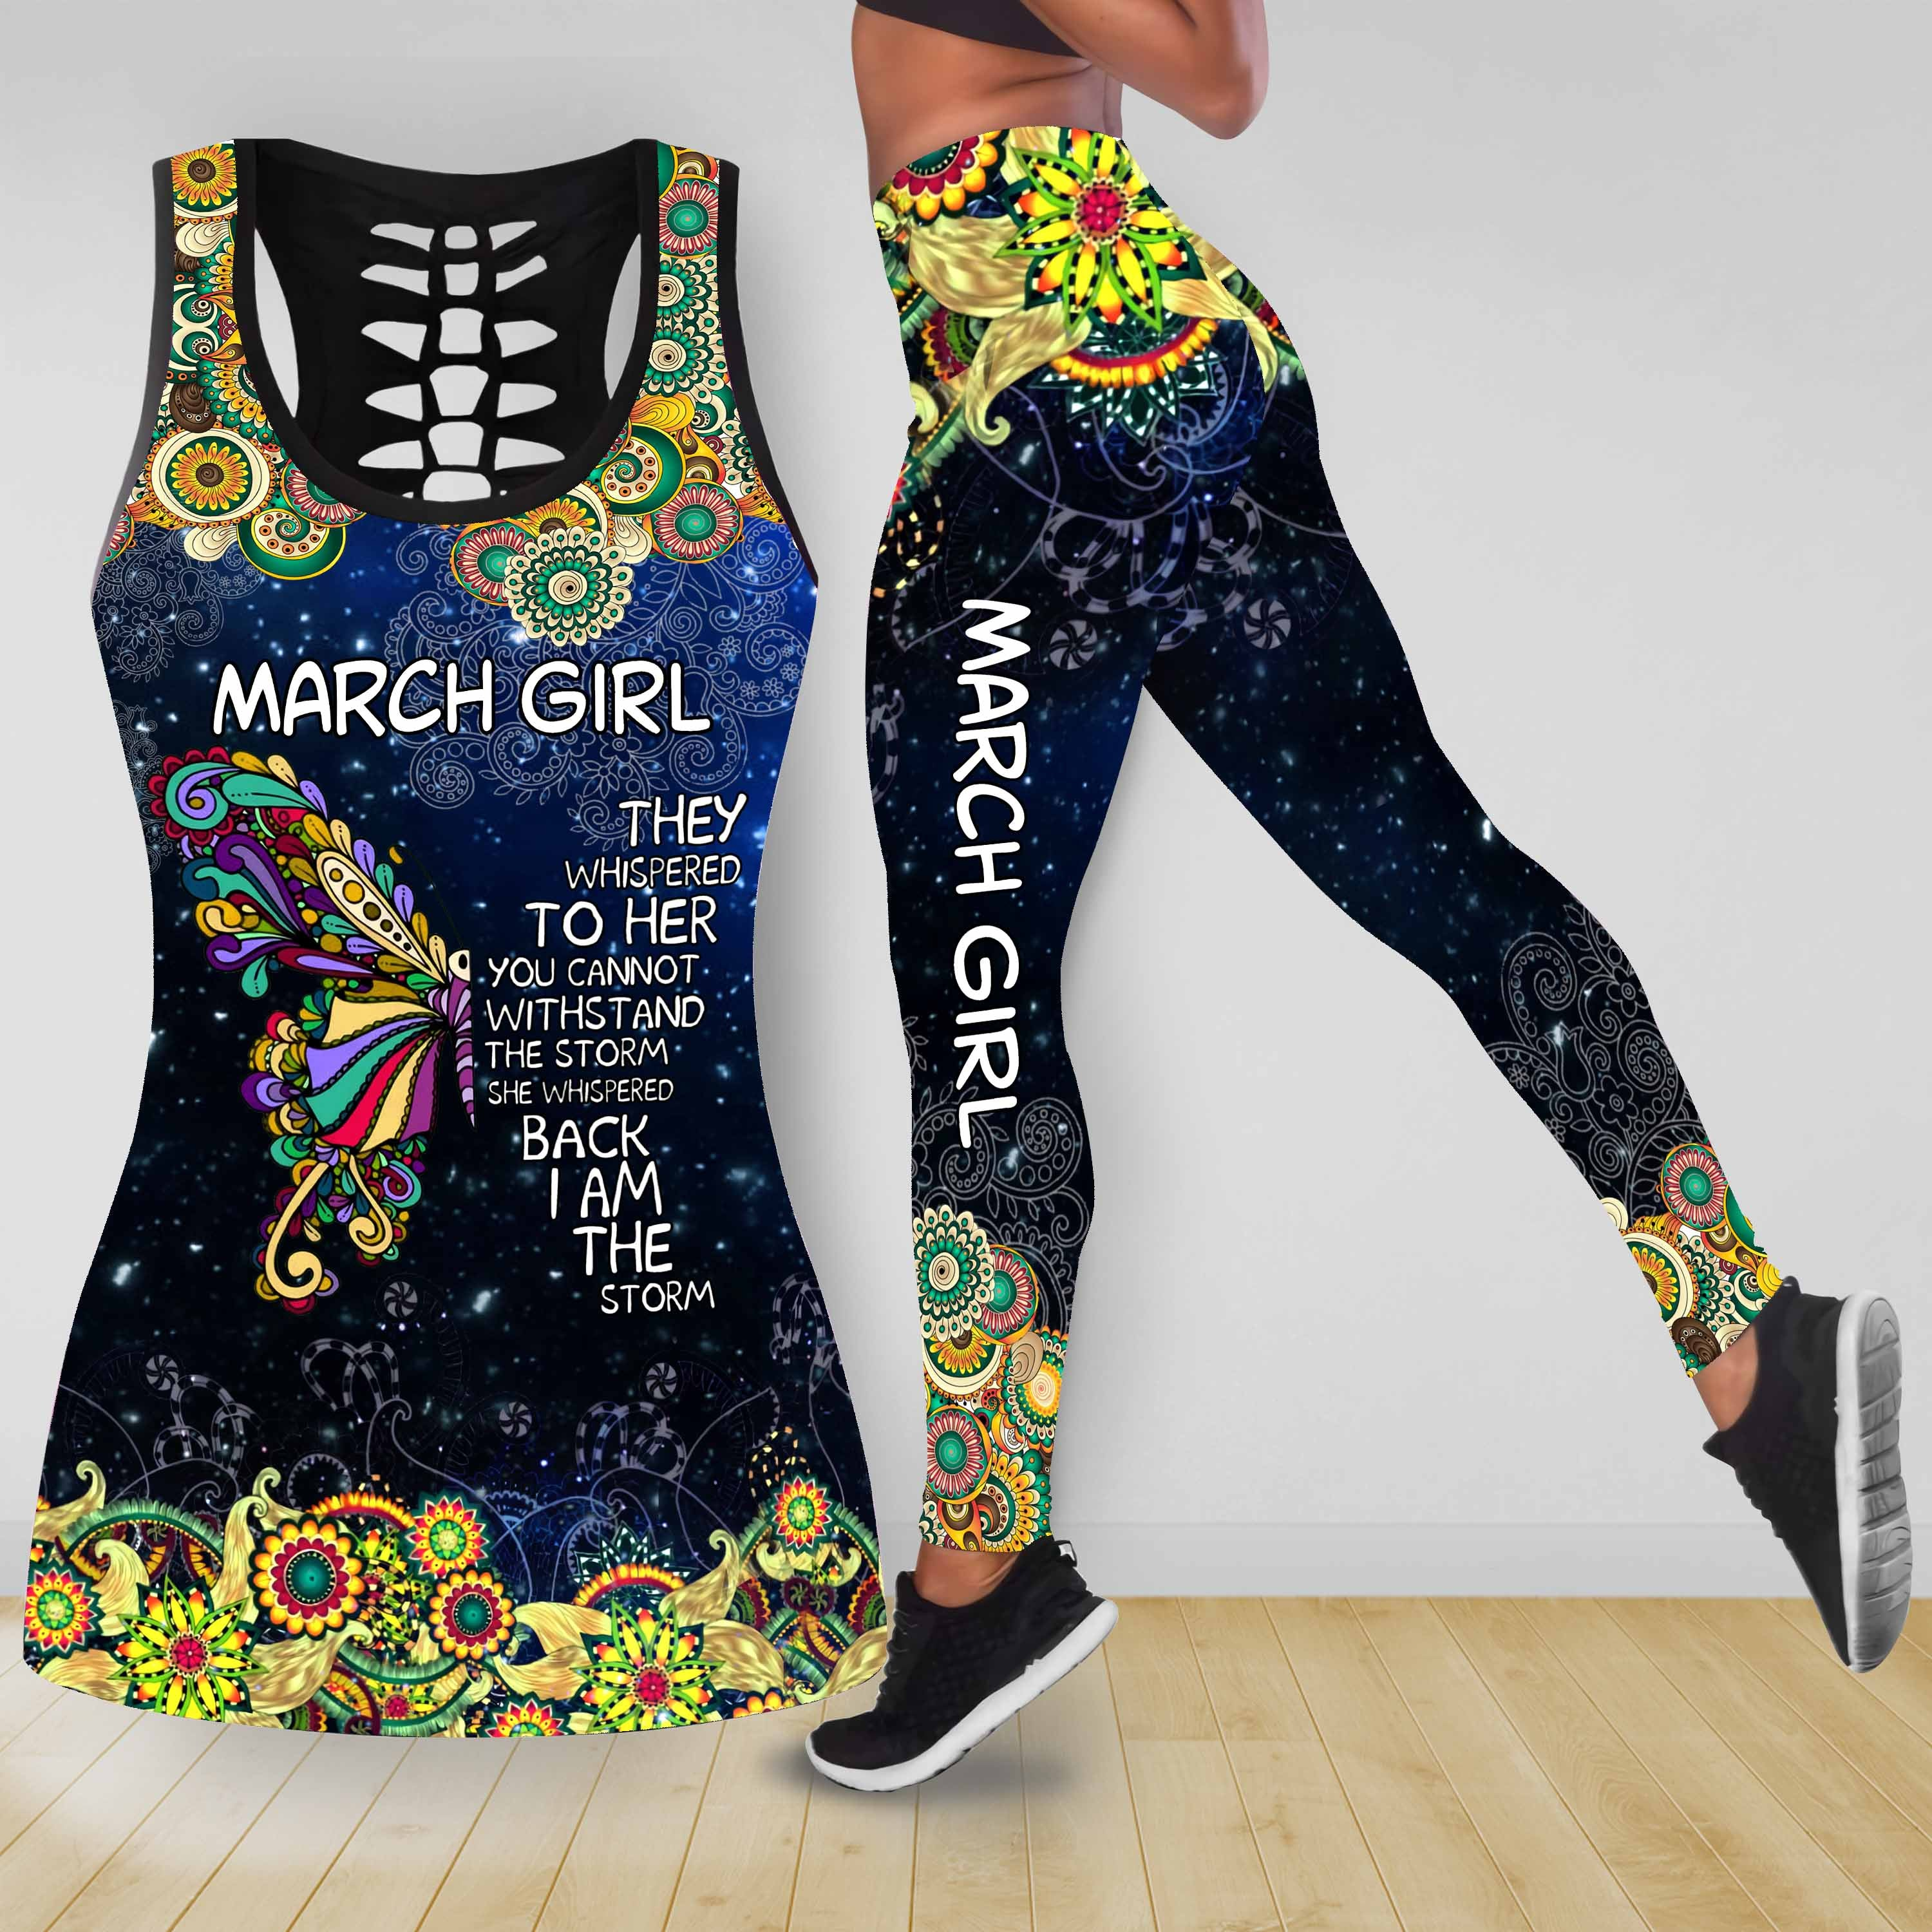 COMBO BUTTERFLY TANKTOP & LEGGINGS OUTFIT FOR WOMEN TA05083IEH MARCH